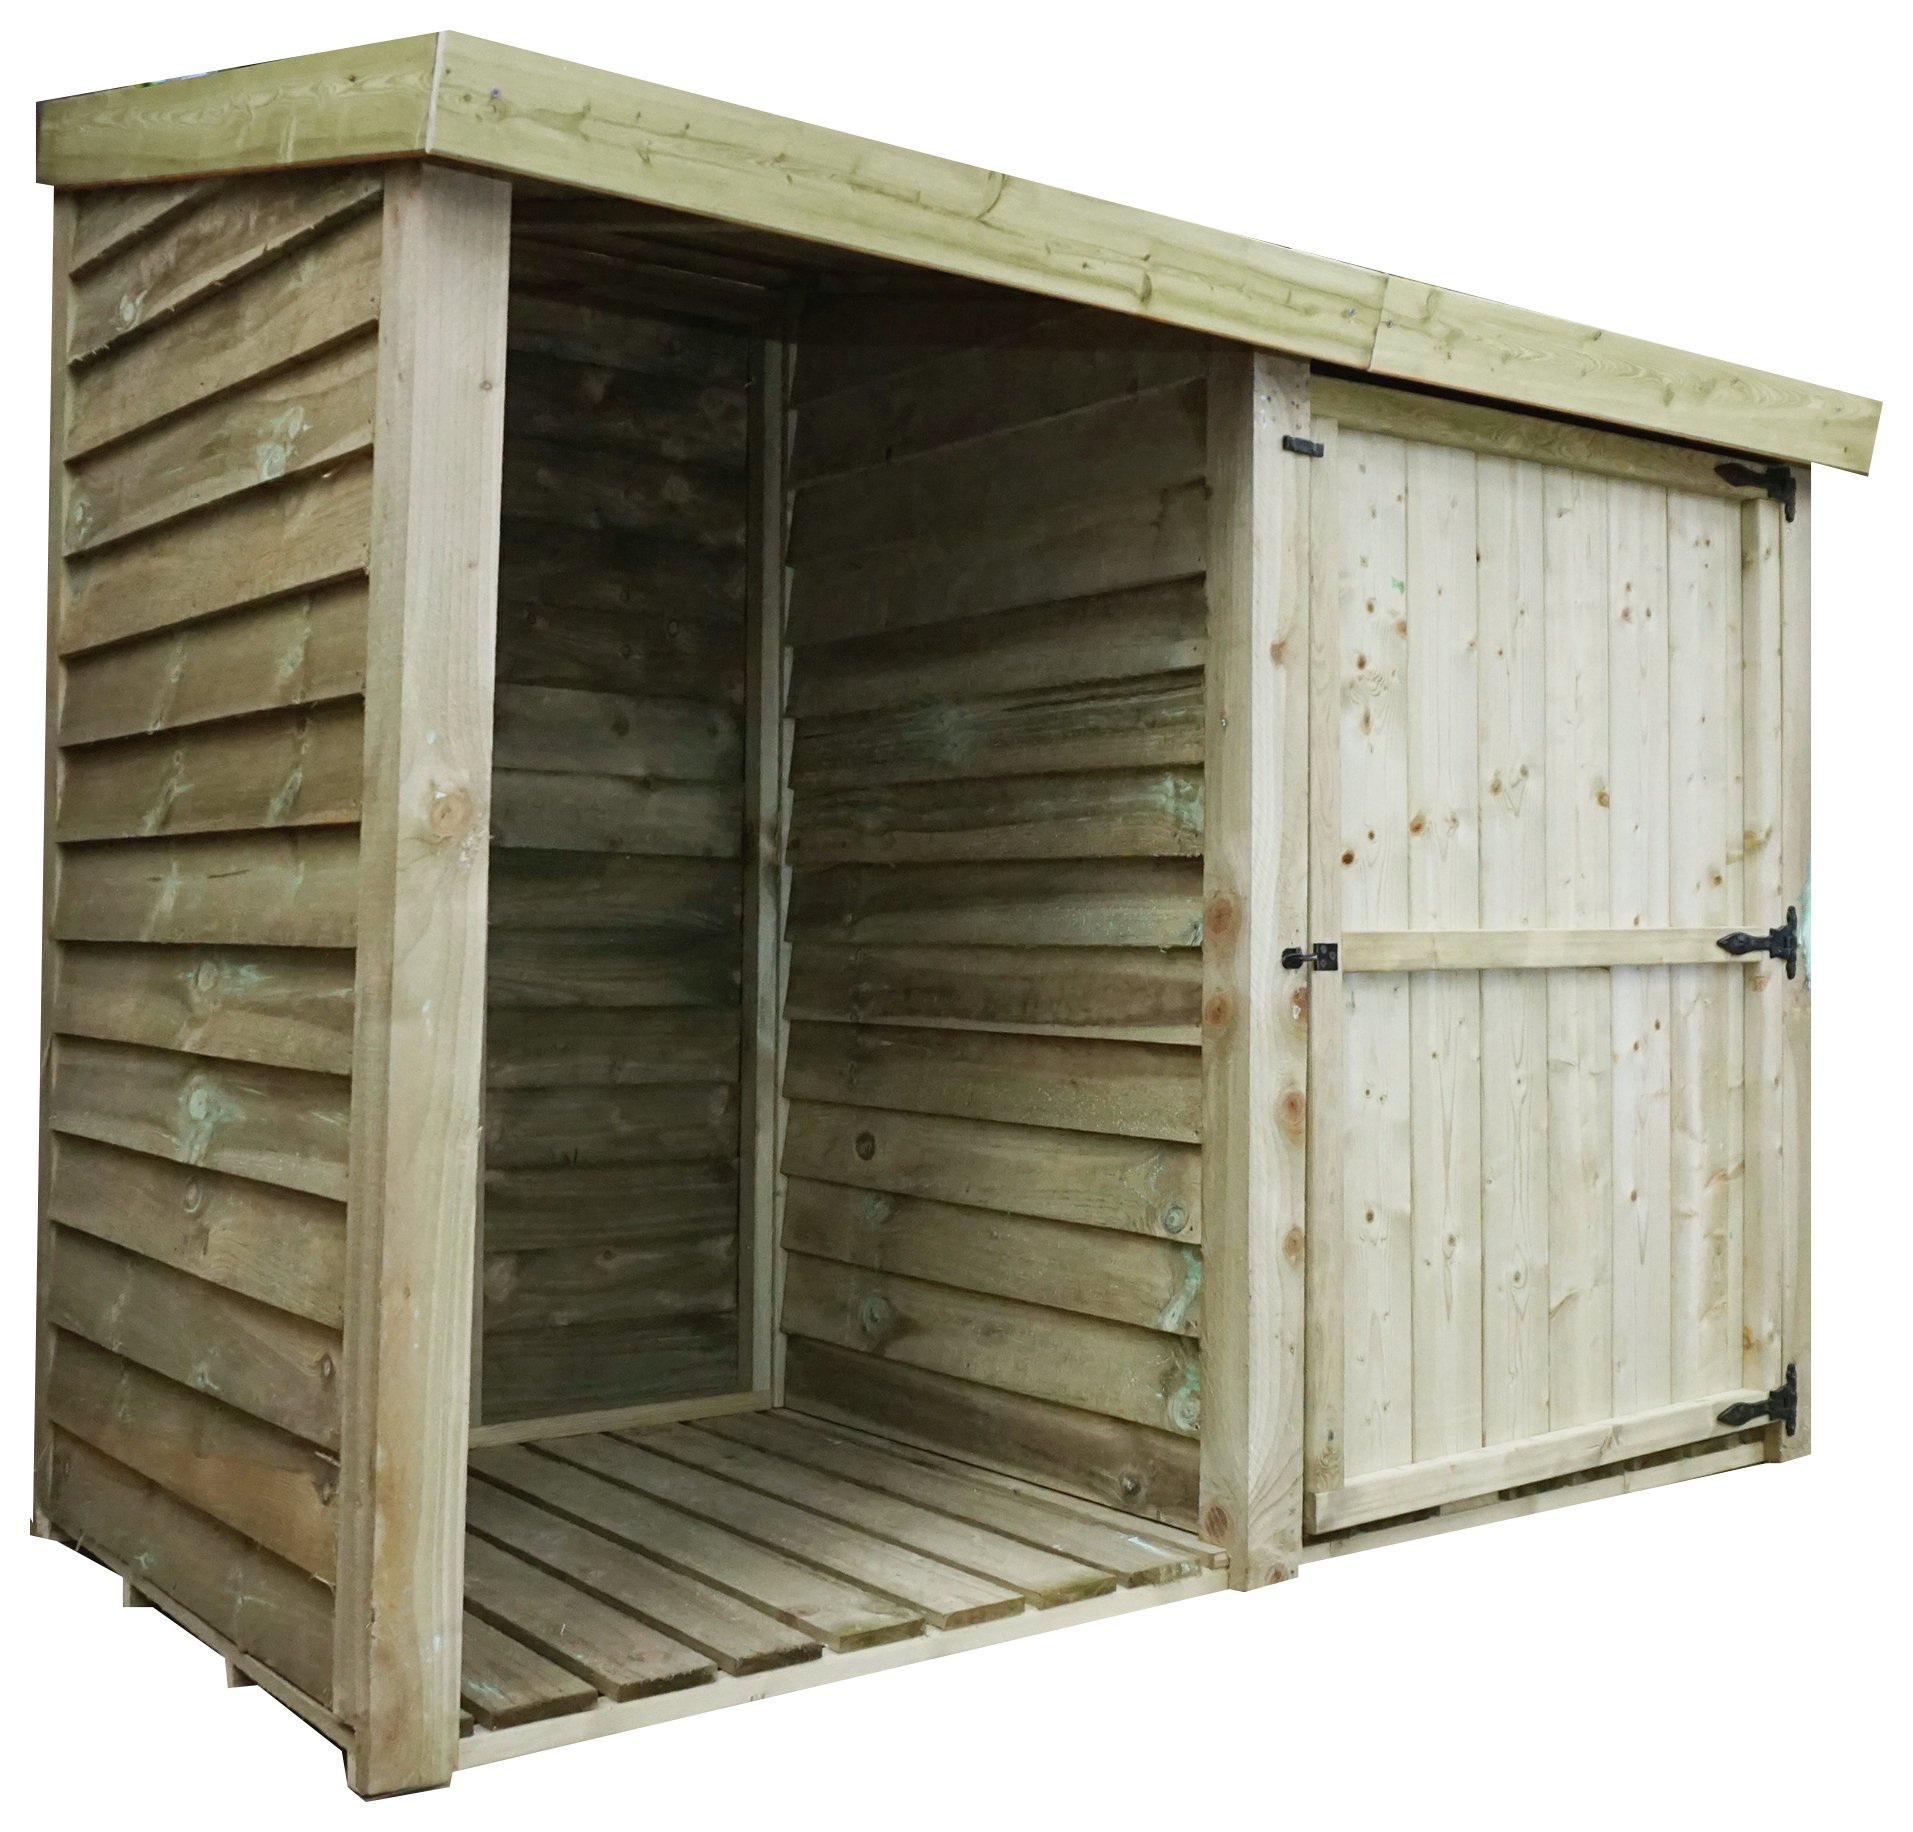 Image of Mercia Garden Products 3ft x 7ft Pressure Treated Log Store.